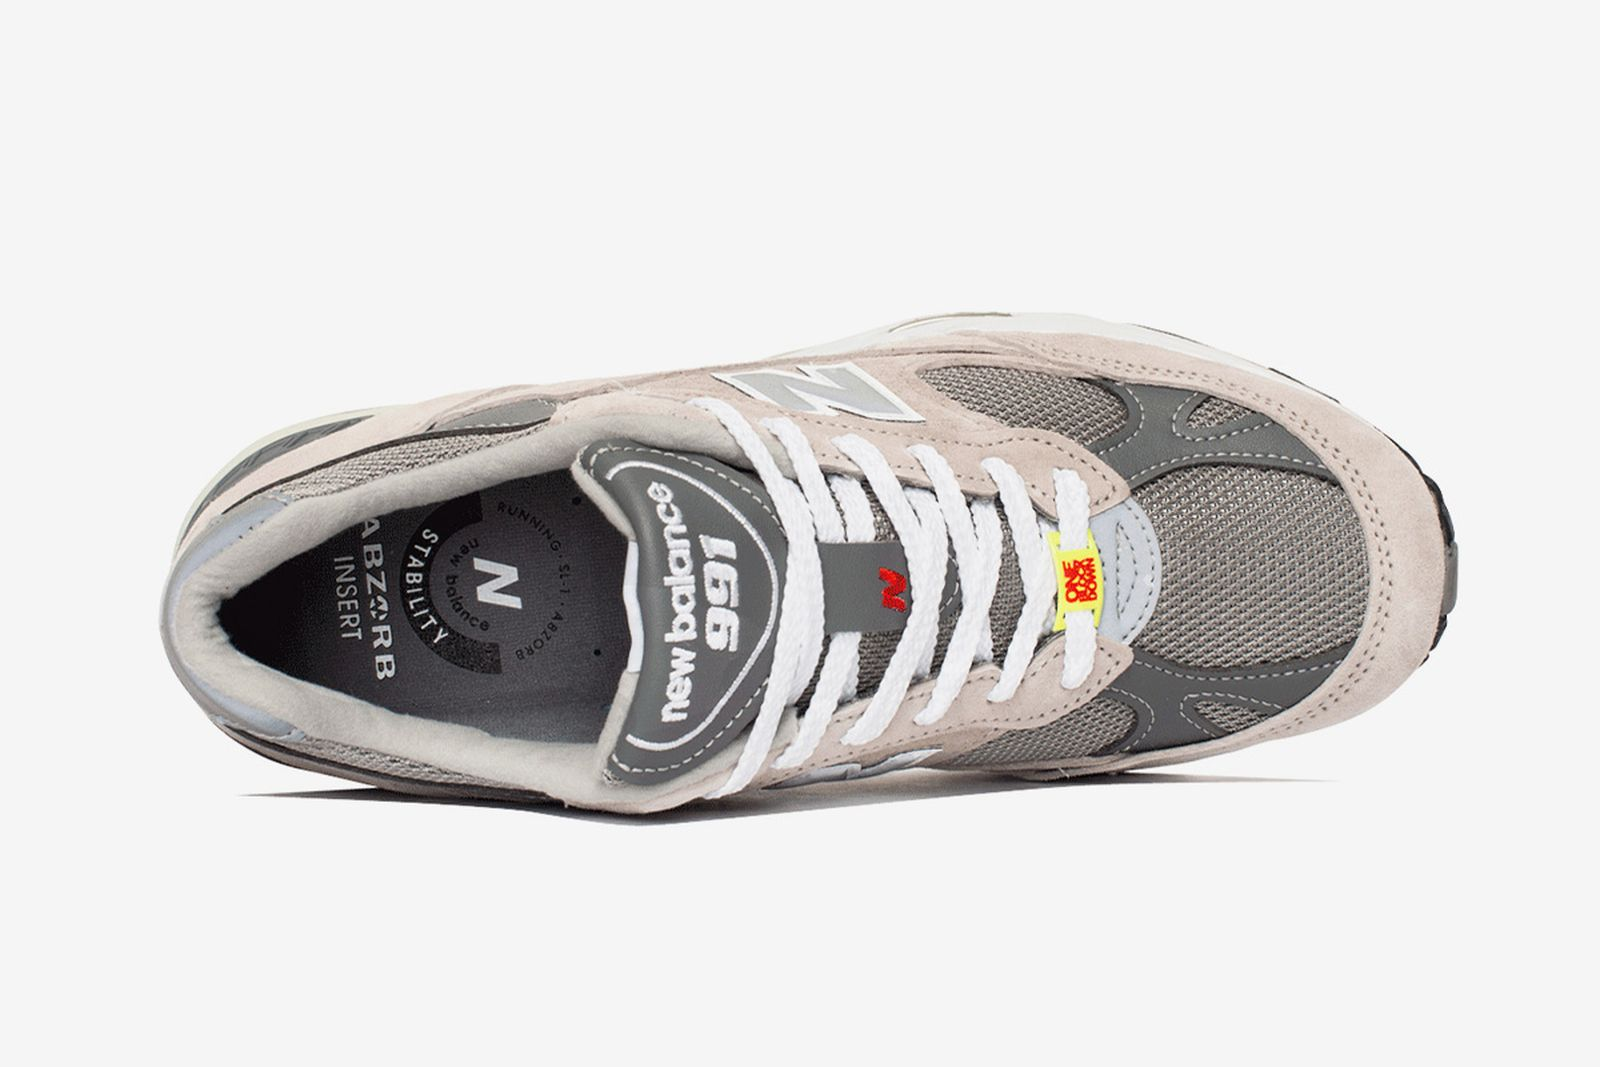 one-block-down-new-balance-991-release-date-price-07